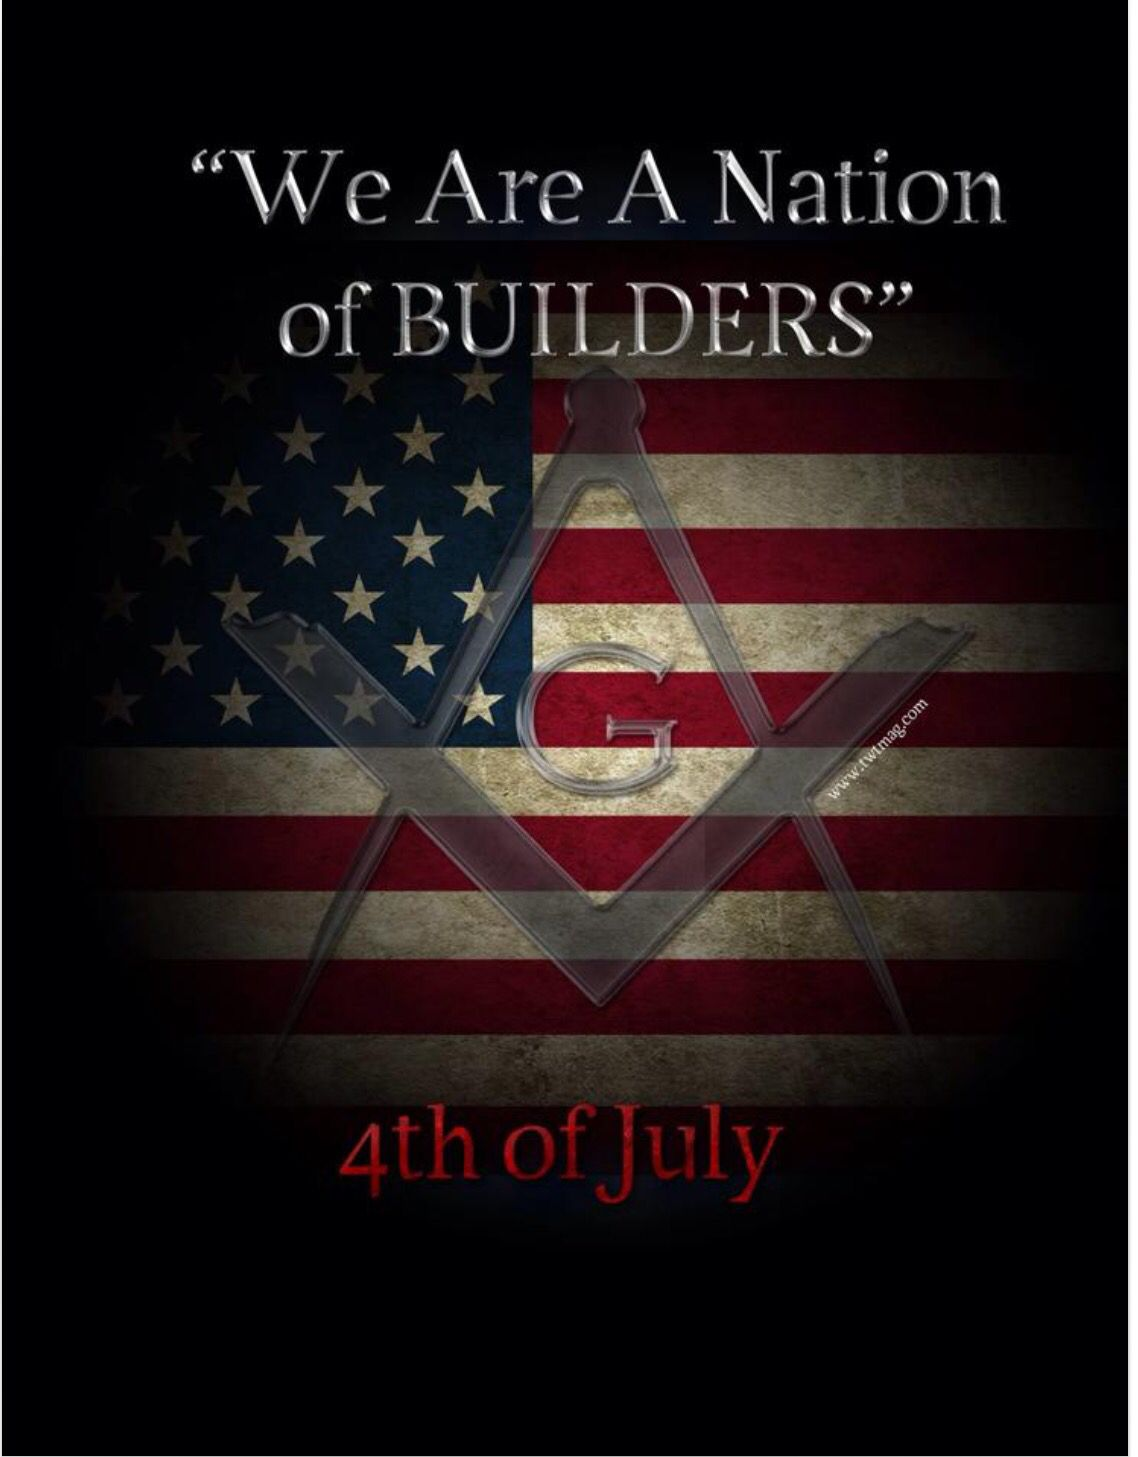 4 th of July | Freemasonry, Freemason, Masonic art